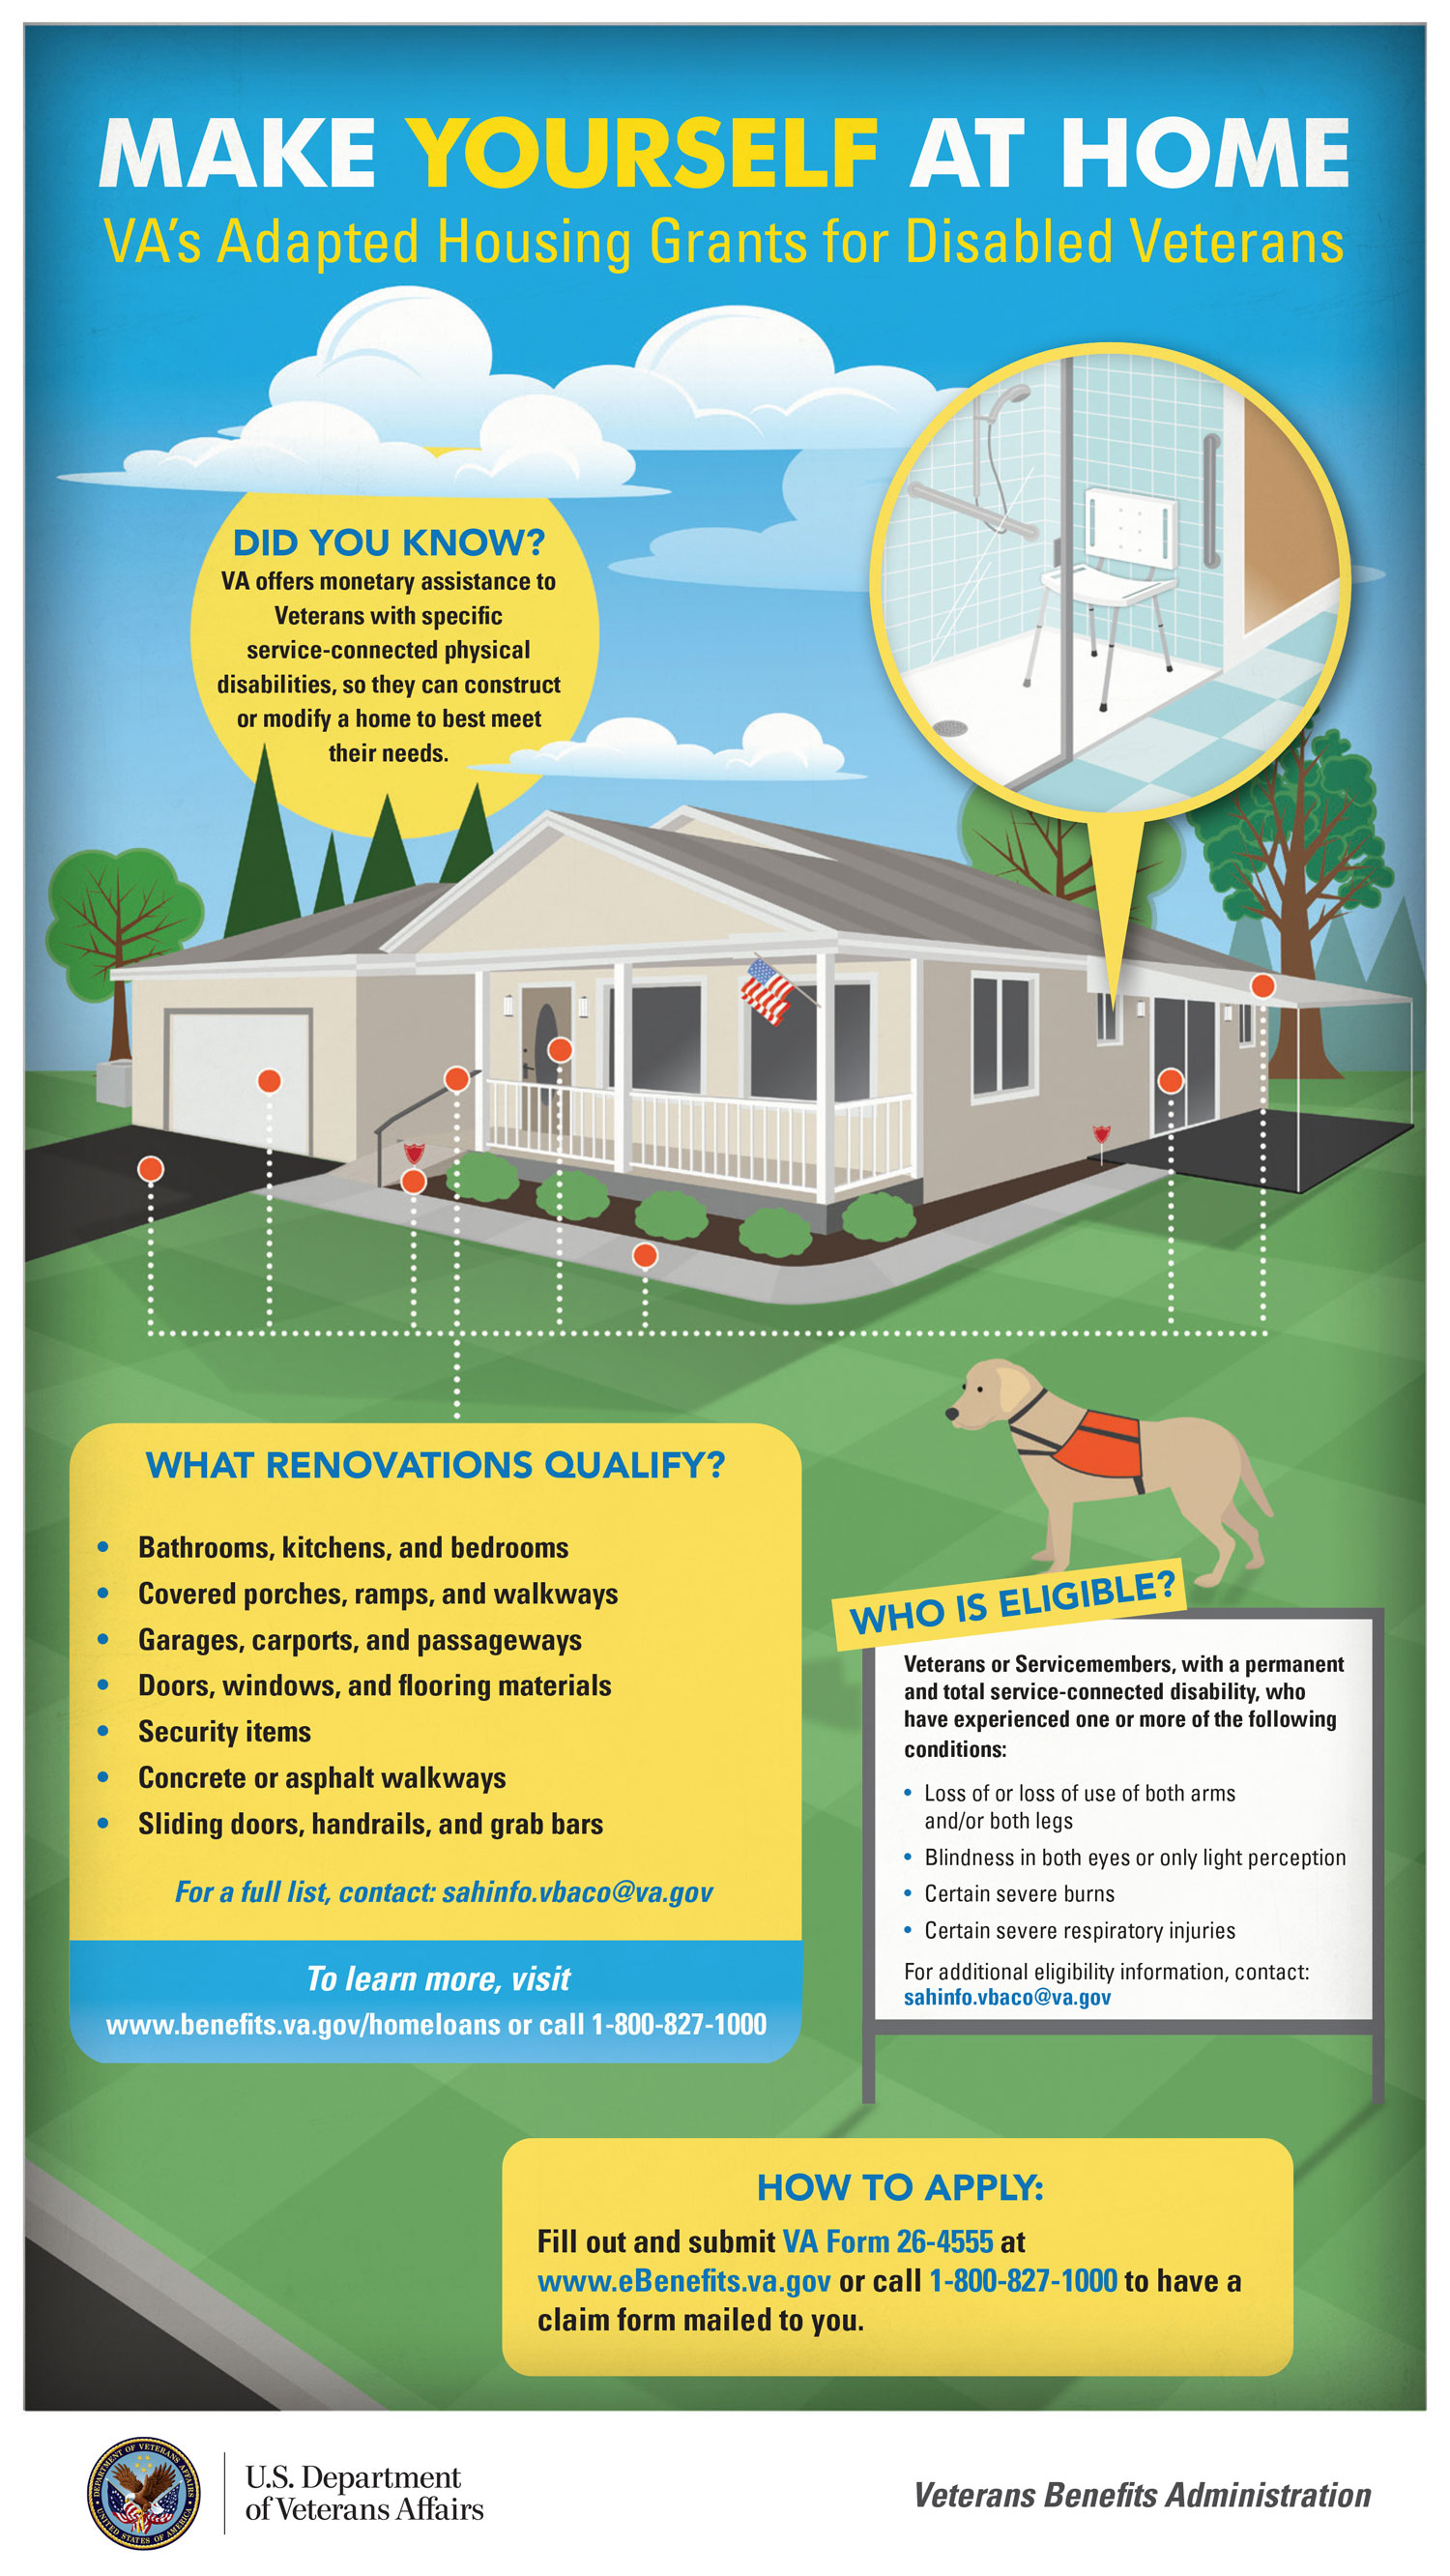 MAKE YOURSELF AT HOME. VA's Adapted Housing Grants for Disabled Veterans. Did you know VA offers monetary assistance to Veterans with specific service-connected physical disabilities, so they can construct or modify a home to best meet their needs? This is infographic details the types of renovations that qualify, the eligibility conditions, and how you can apply by submitting VA Form 26-4555 at www.eBenefits.va.gov or call 1-800-827-1000 to have a claim form mailed for you. Please see PDF Download link to view an accessible PDF that addresses the text content of this document.